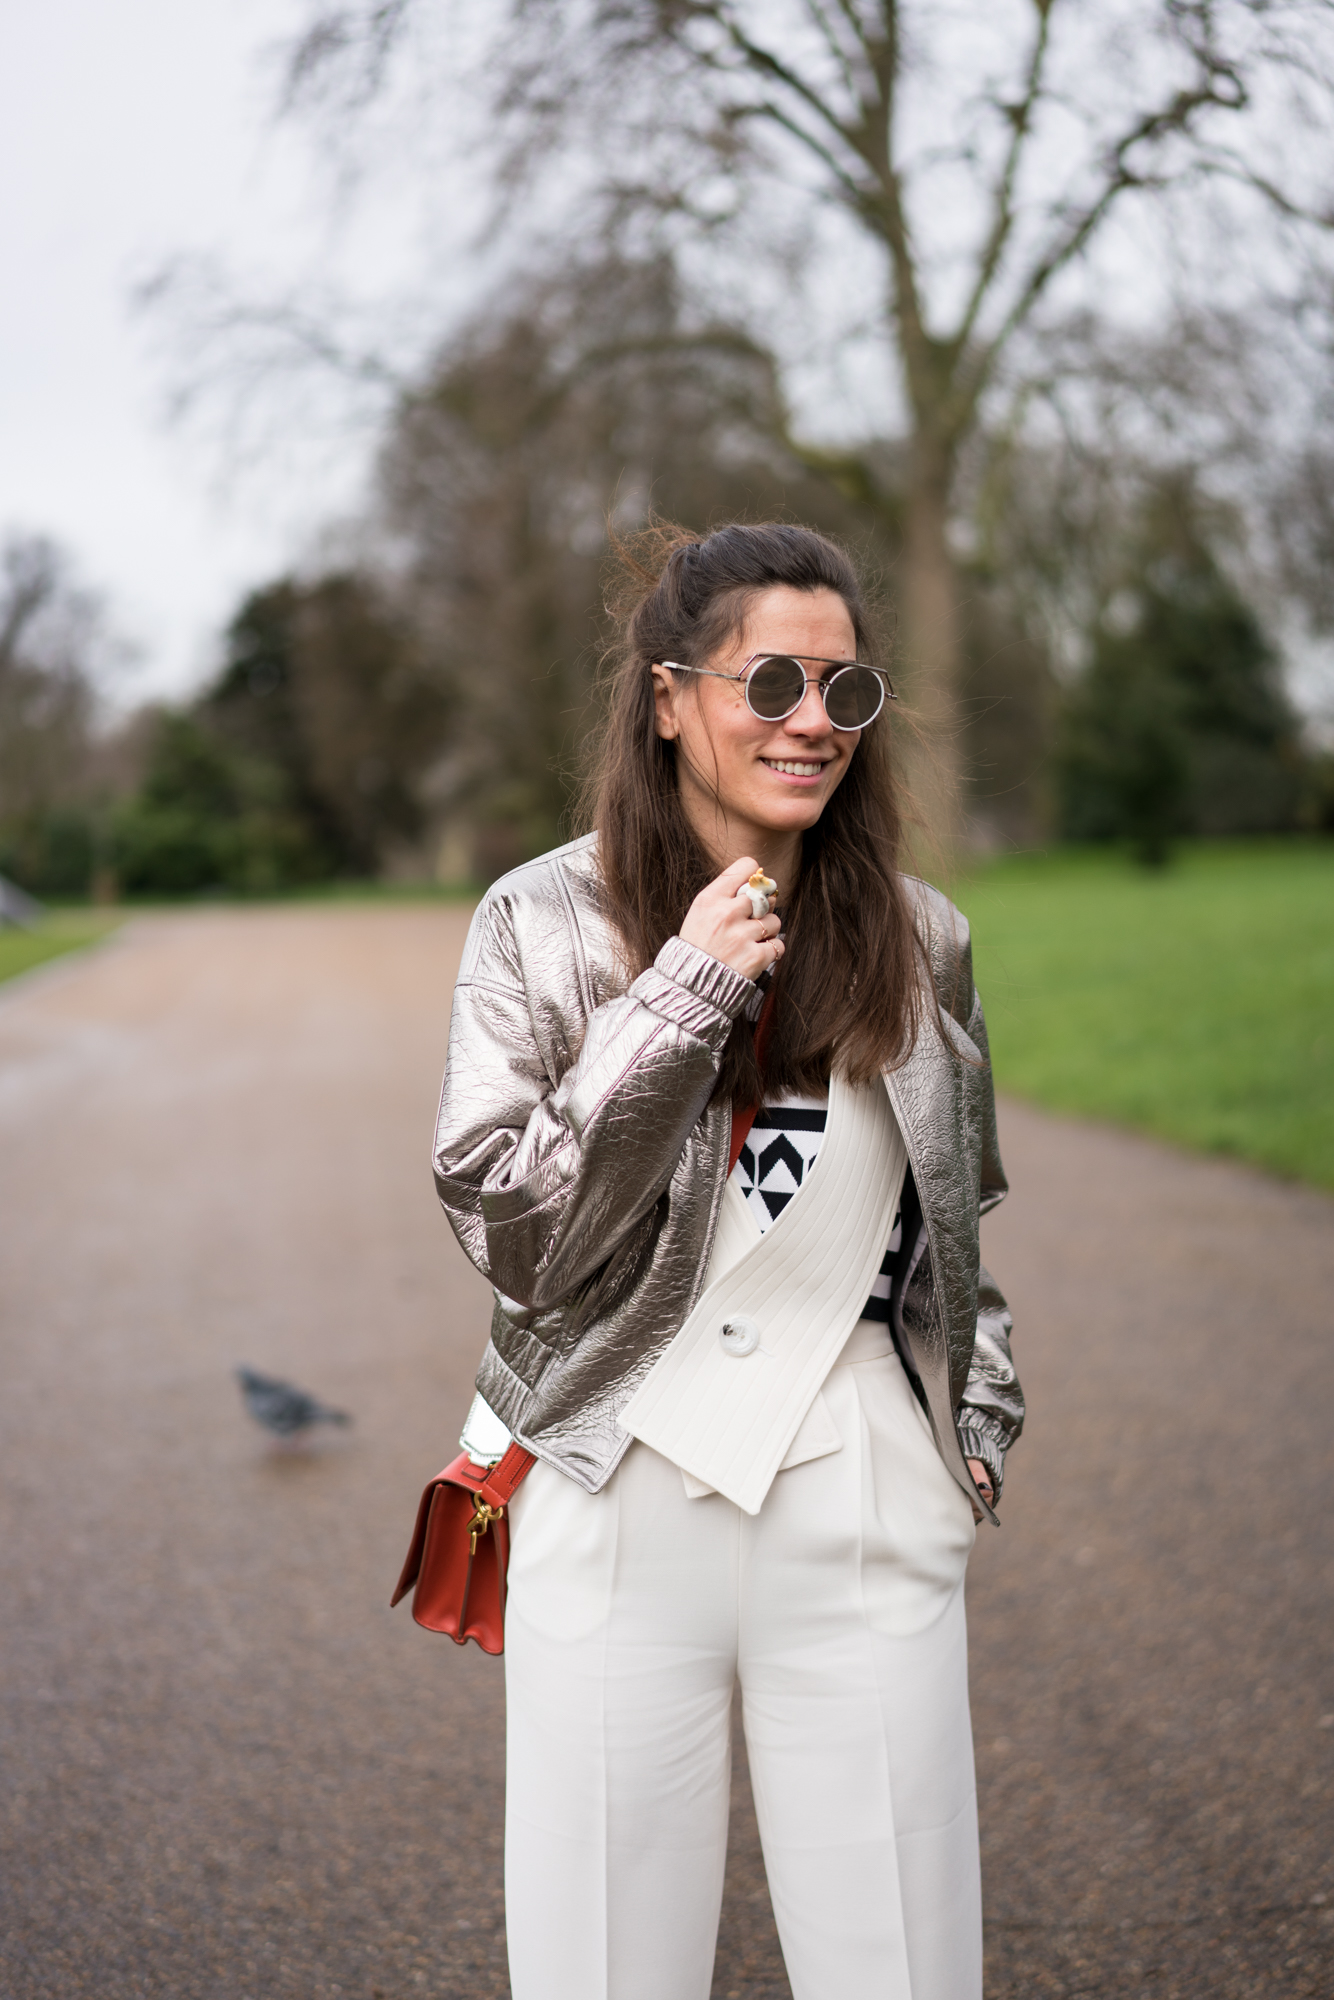 lfw, street style, london fashion week, sunglass hut, style, fashion, turkish style blogger, billur saatci, off ne giysem, mybestfriends, jumpsuit, bomber jacket, dun, house of holland, wise and ope, turkish style blogger, burberry, after burberry show, before burberry show